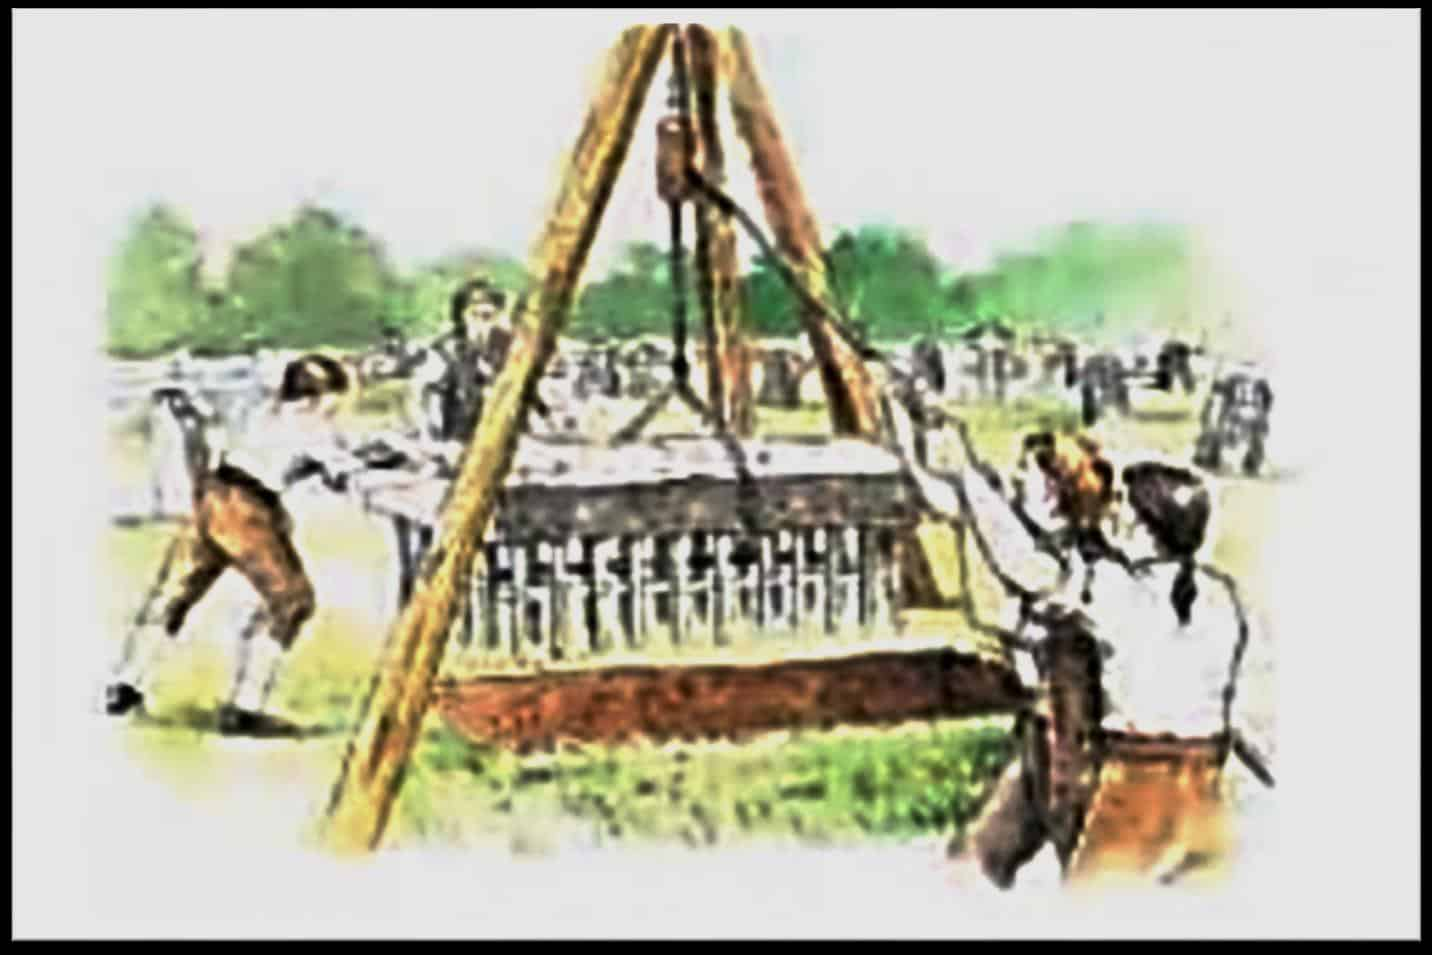 Drawing or lifting tackle used to move mortstones and mortsafes into position. Source Unknown